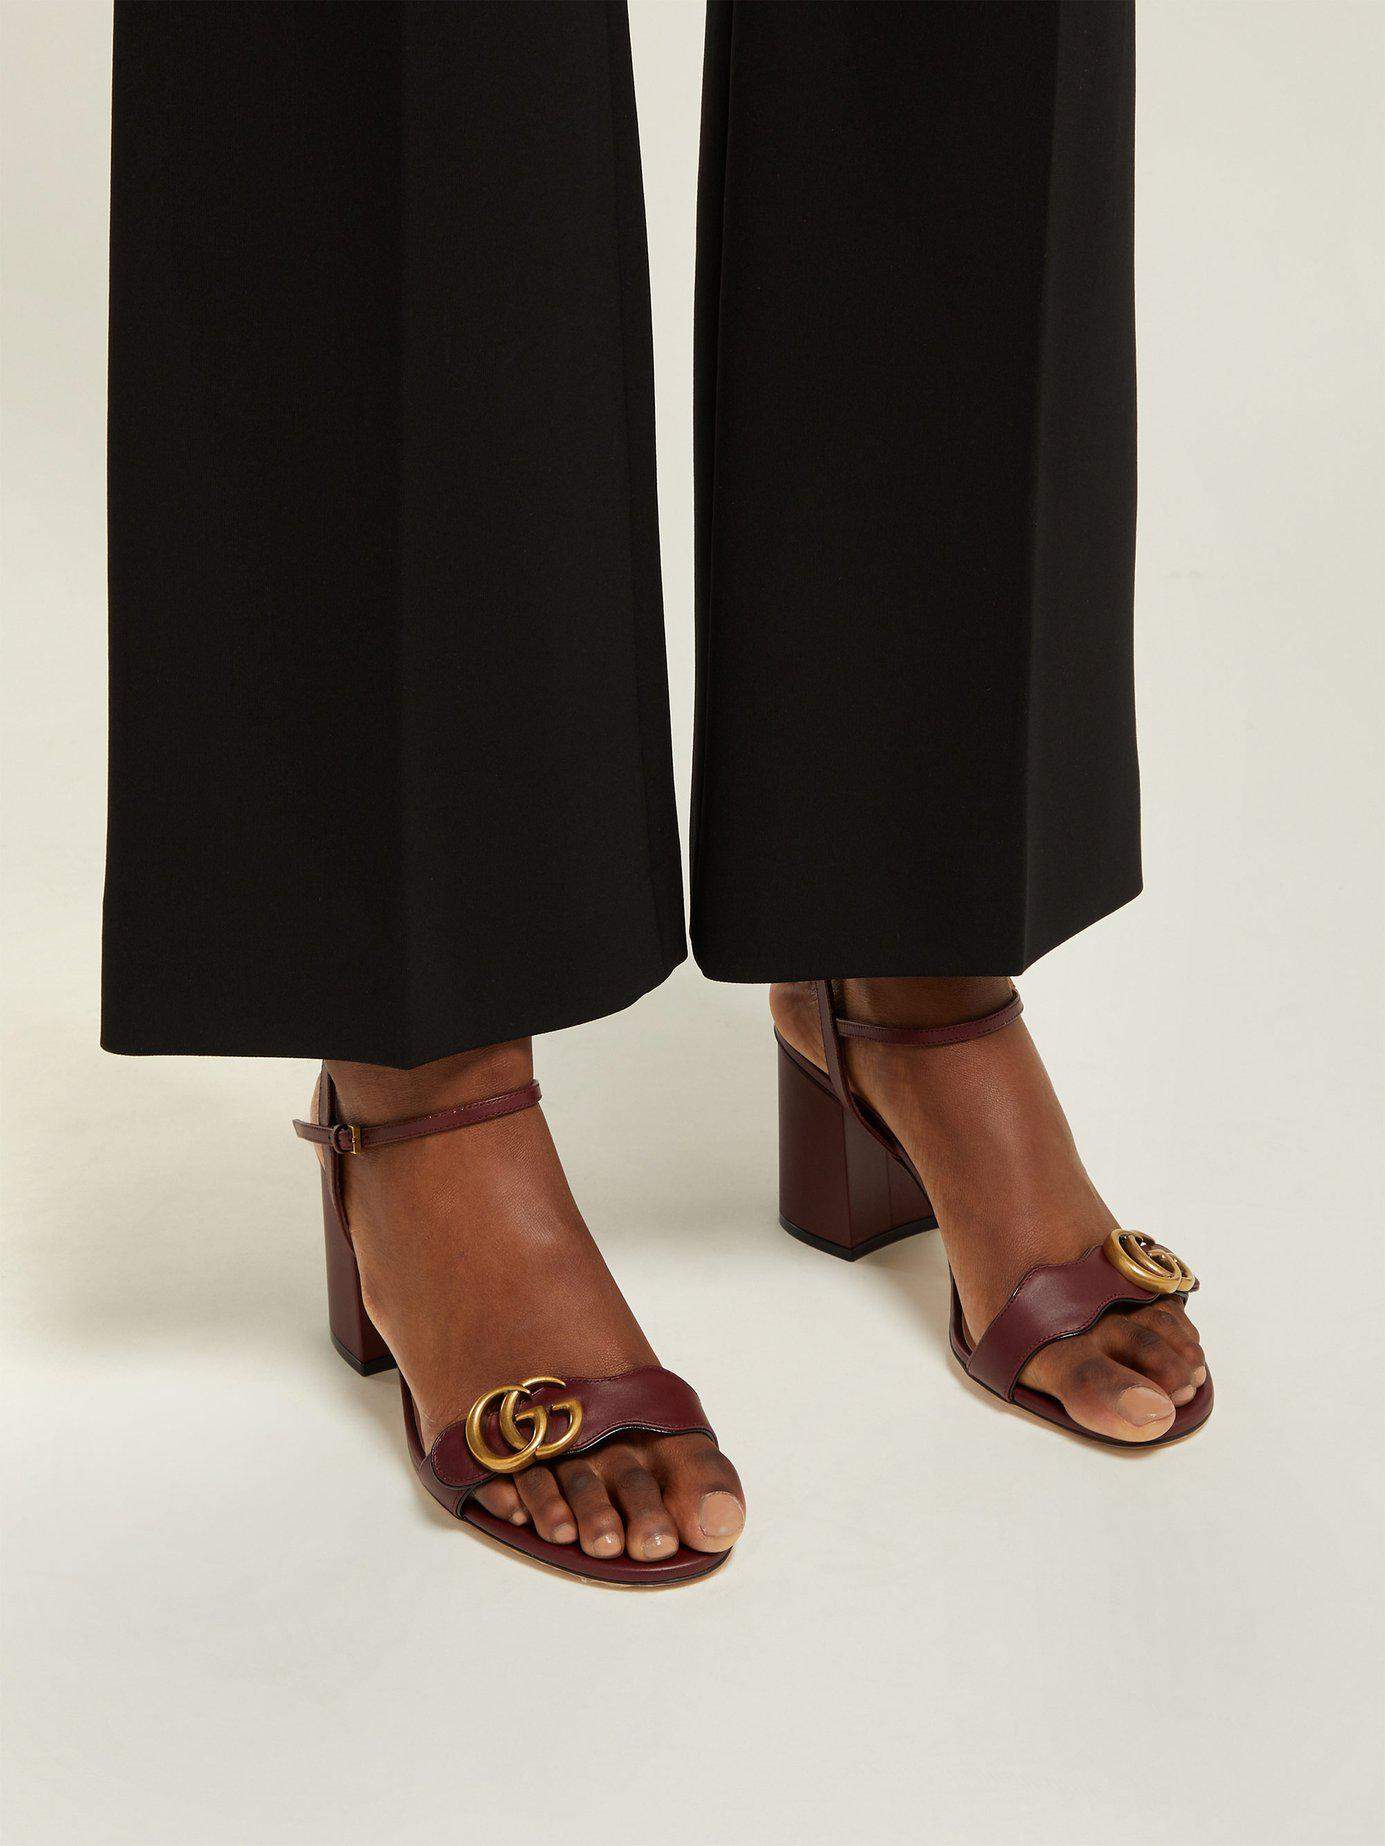 38608178bb1a ... Marmont Leather Sandals - Lyst. View fullscreen